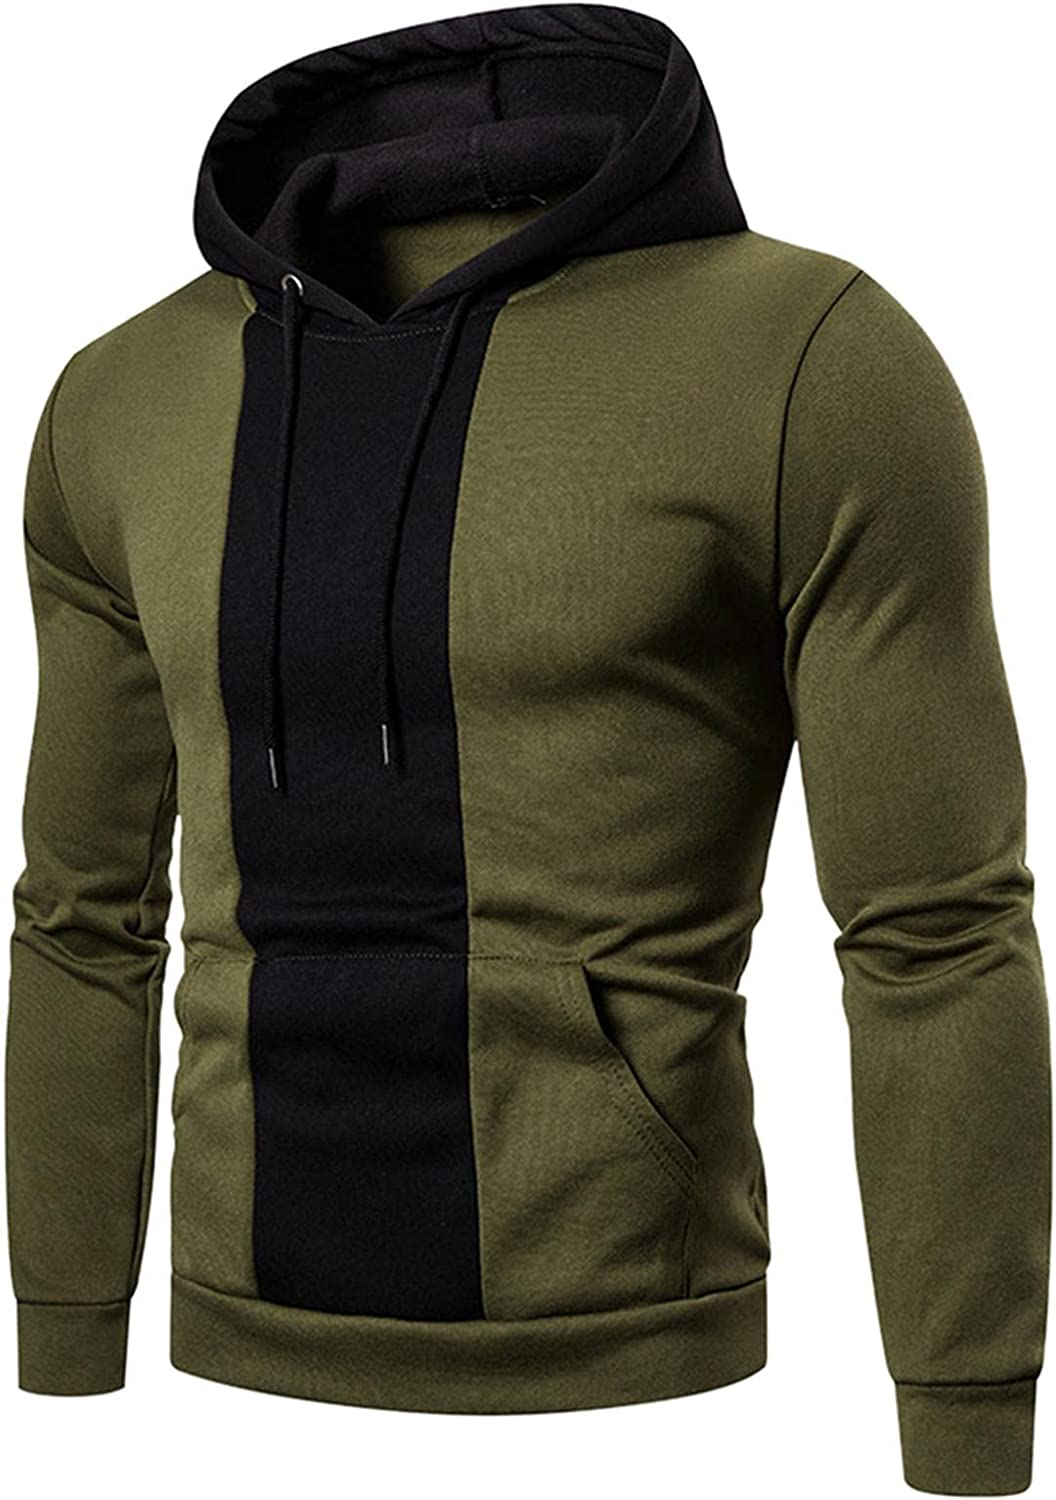 Aayomet Hoodies Sweatshirts for Men Patchwork Color Block Tops Long Sleeve Workout Athletic Hooded Pullover Blouses